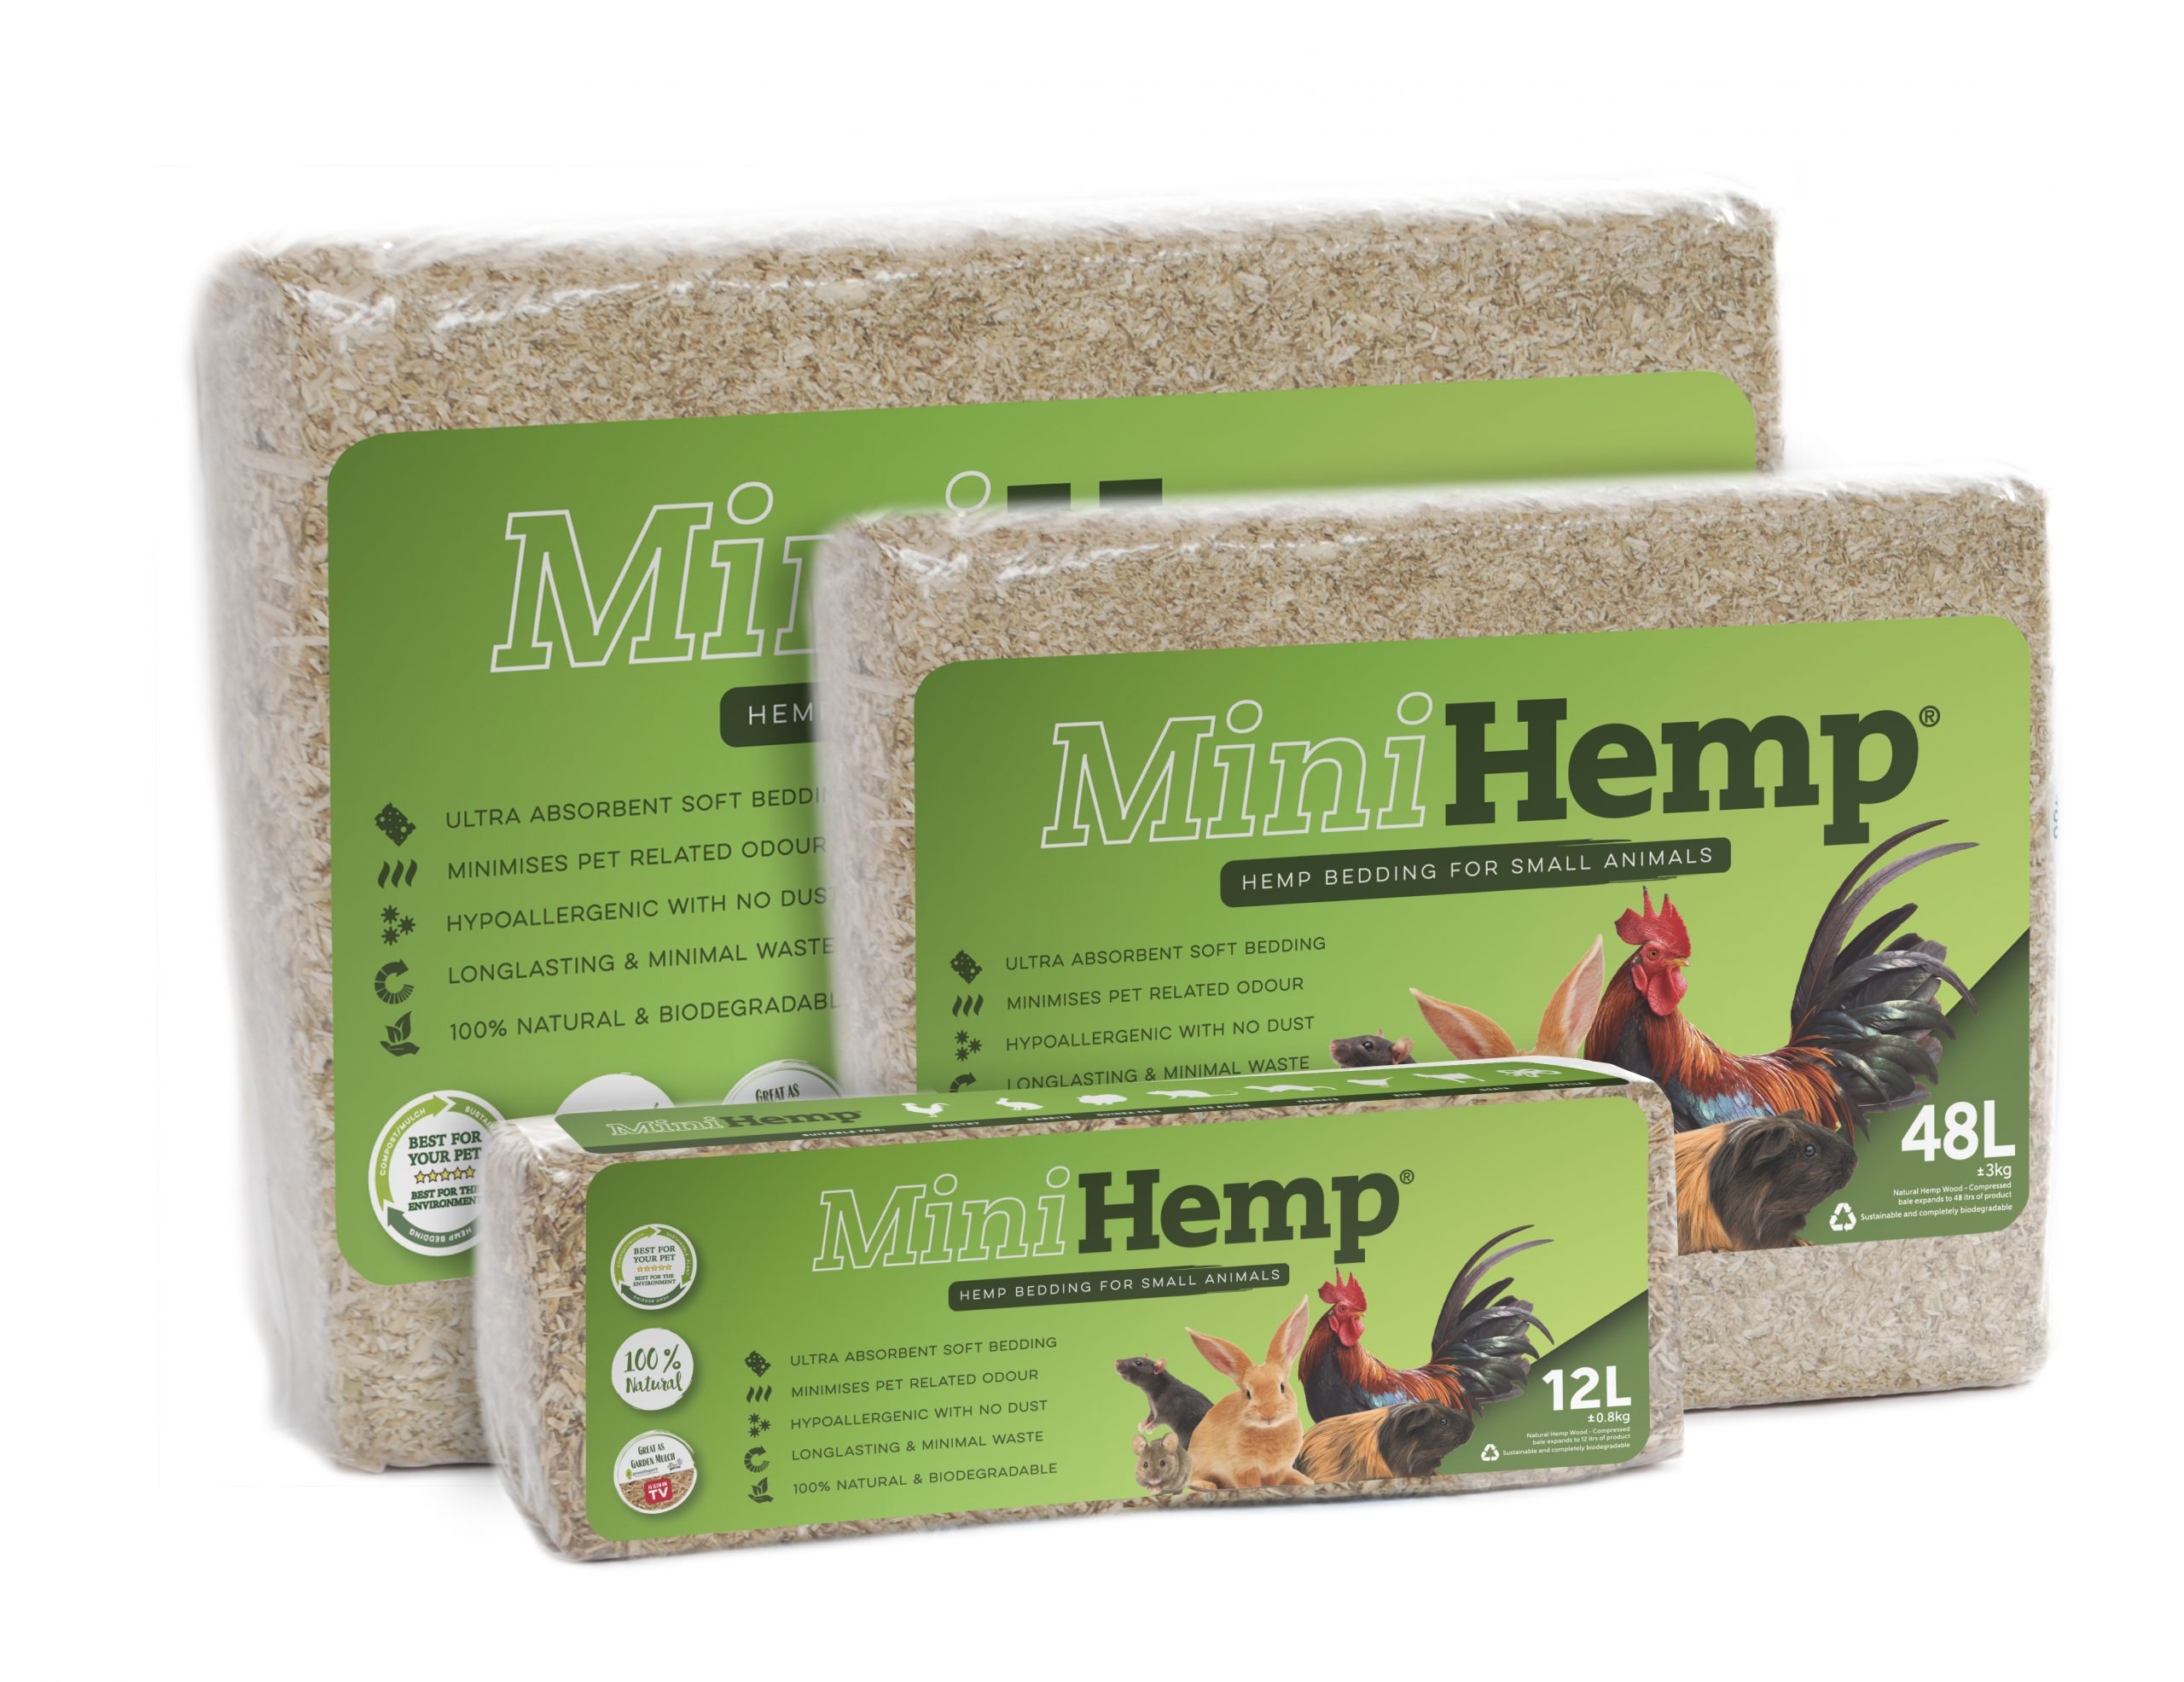 MiniHemp Hurd animal bedding for small animals, birds, chickens, rats and mice.